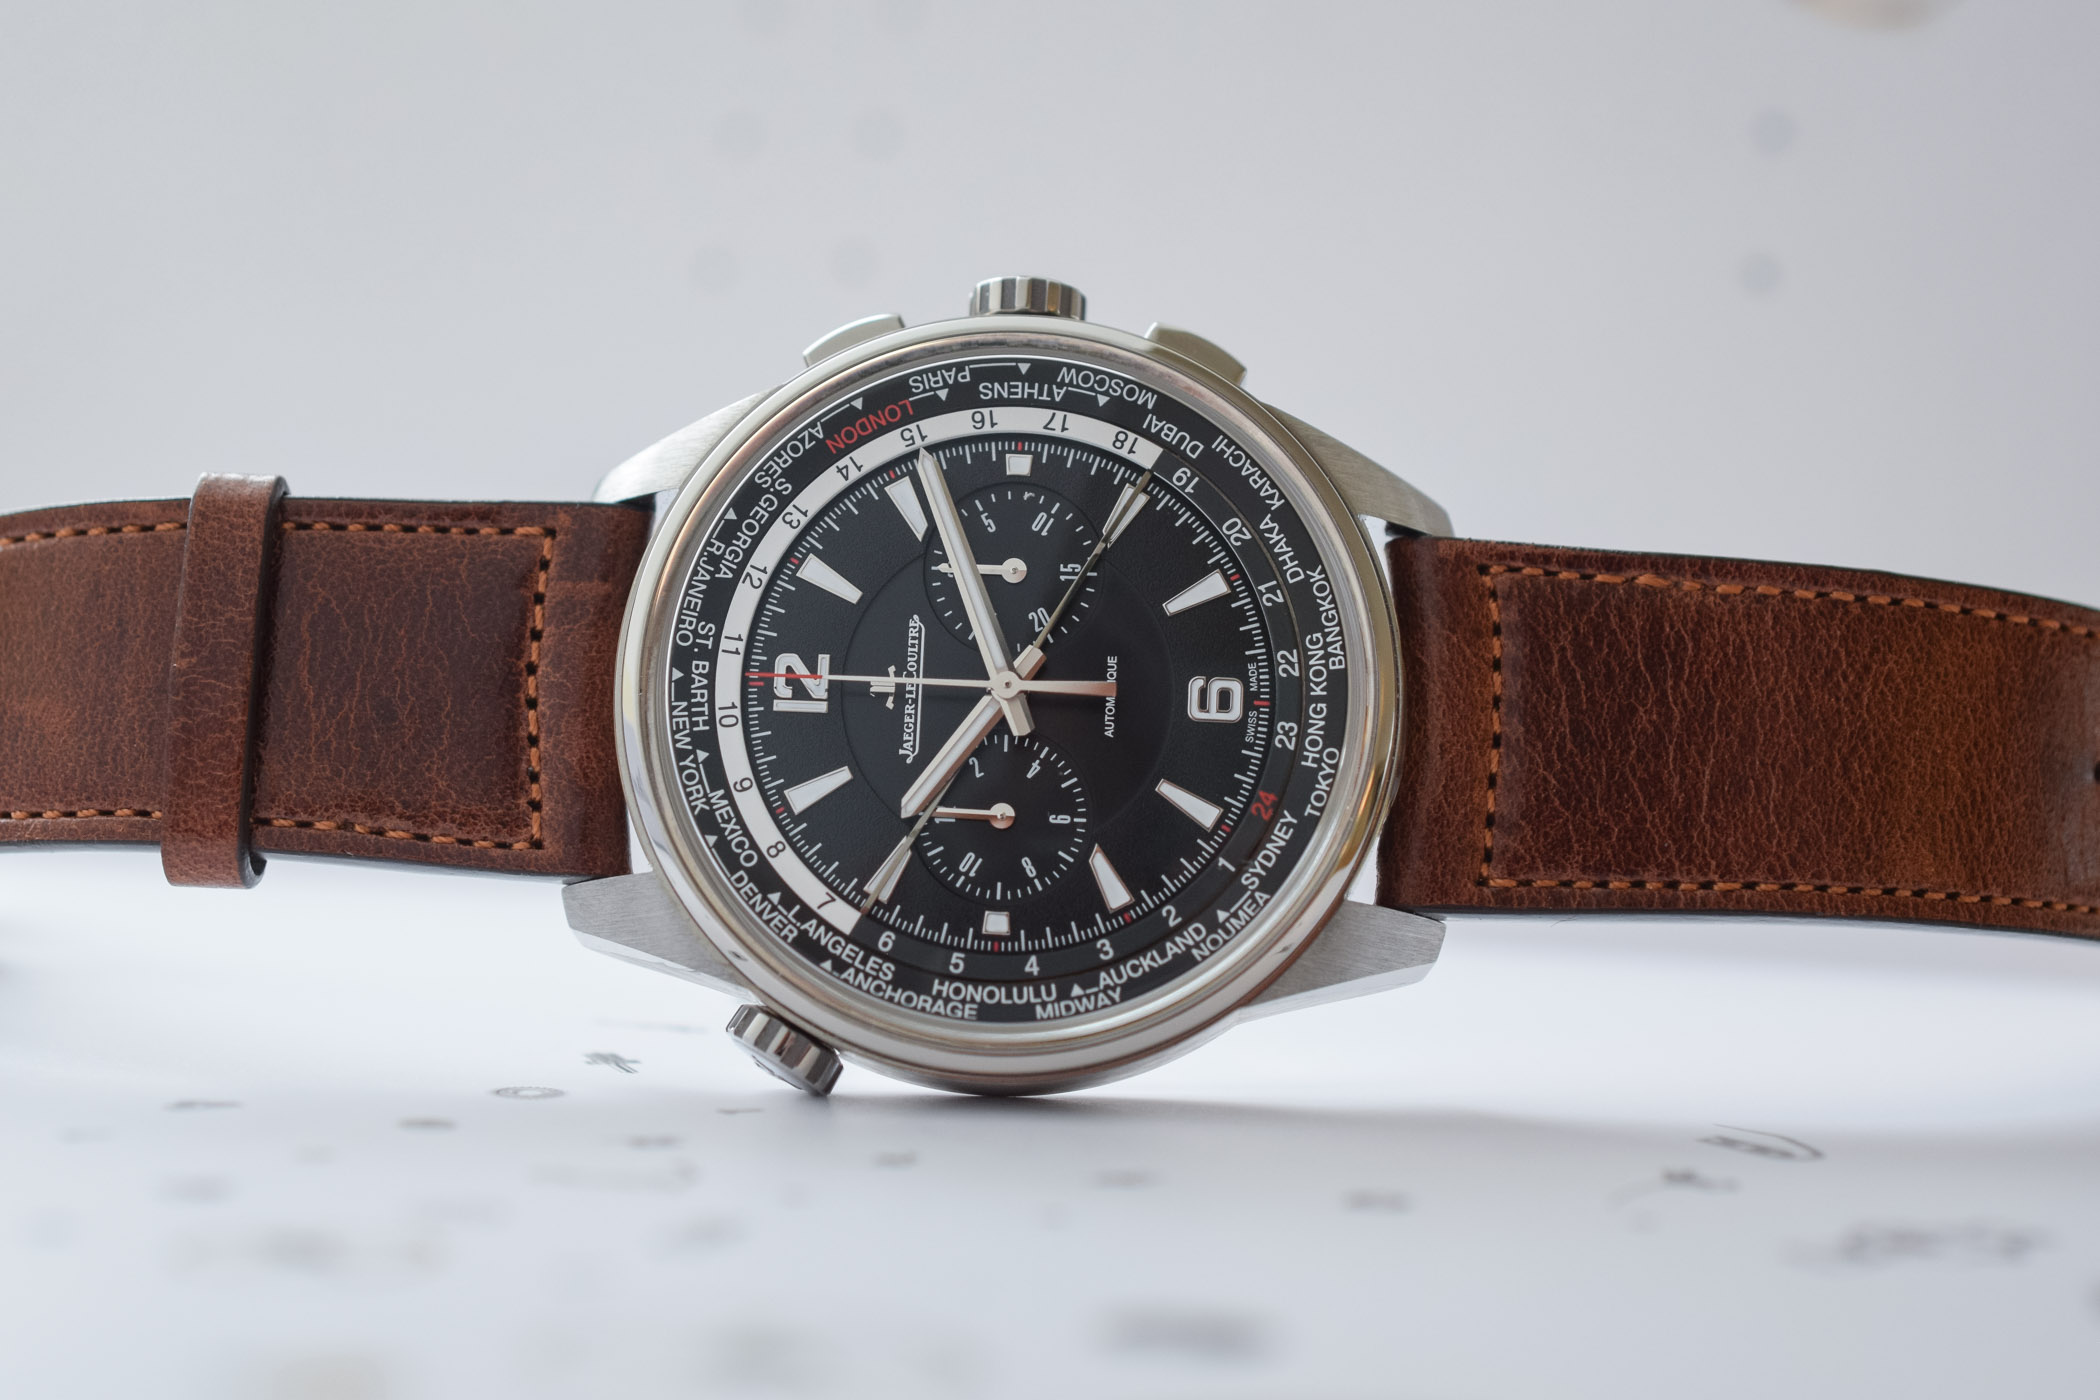 Jaeger-LeCoultre Polaris Chronograph WorldTimer - Review - 5